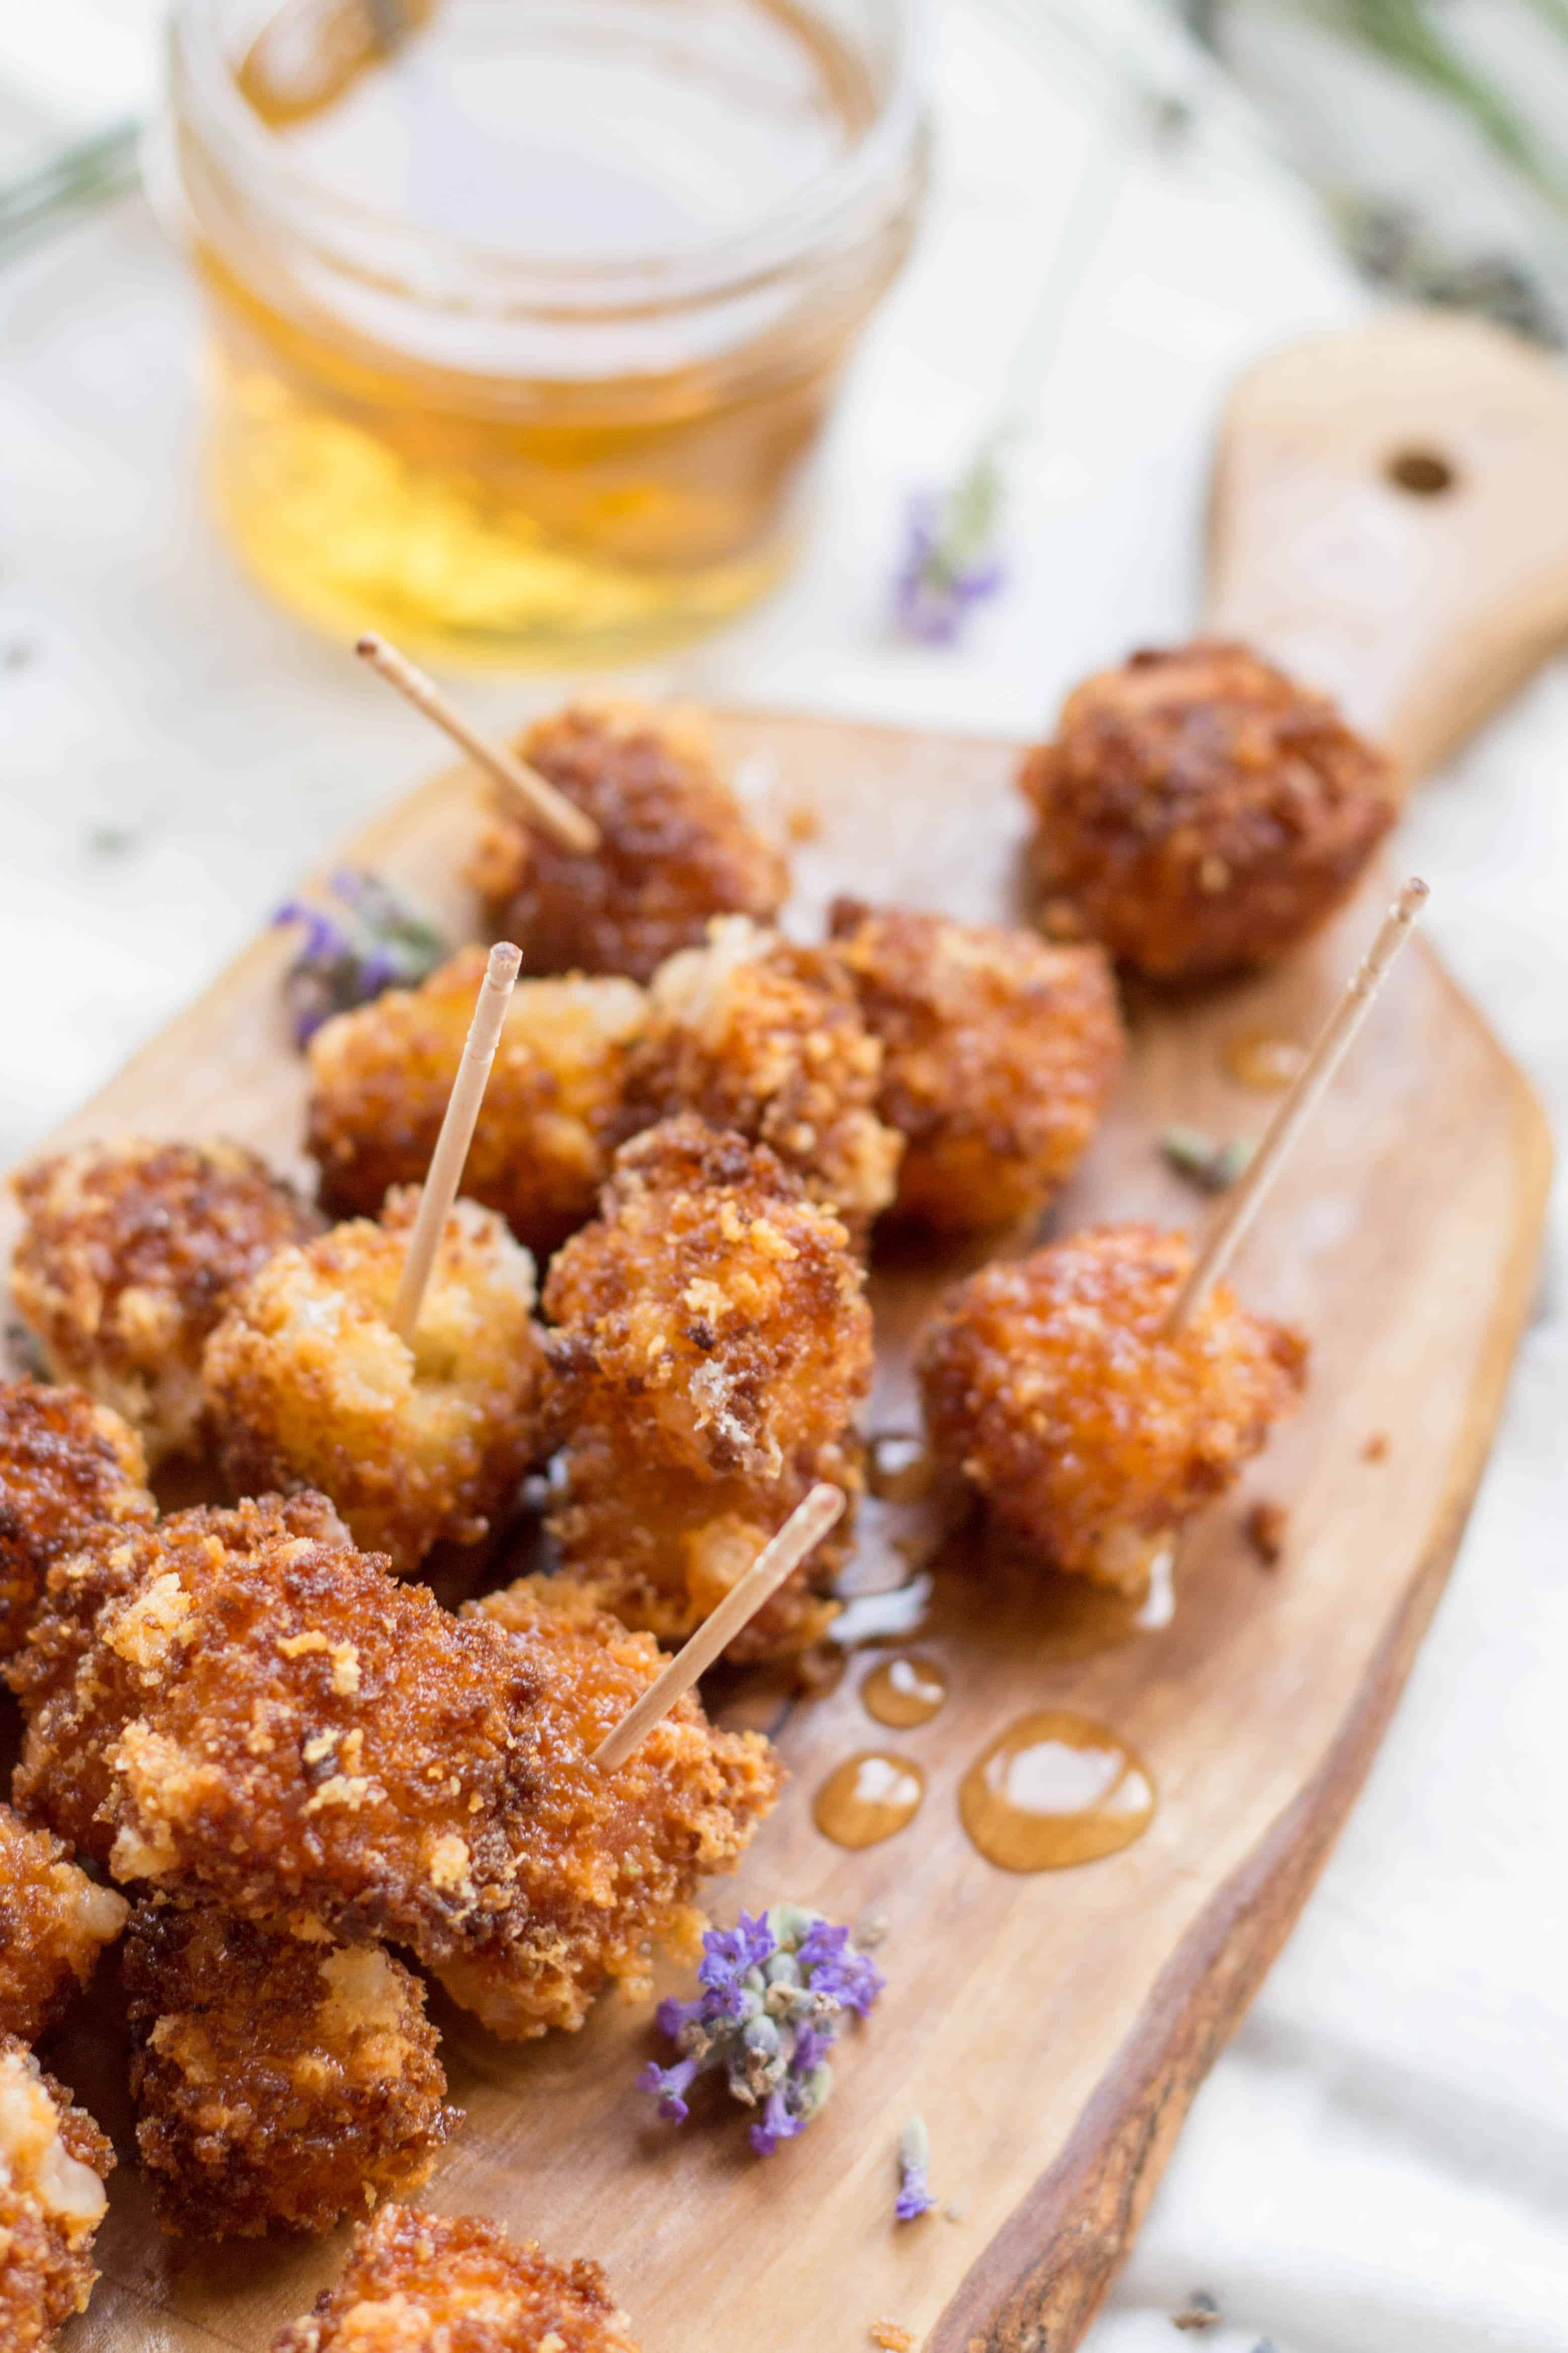 Fried Manchego Cheese with Lavender Honey (Video!)